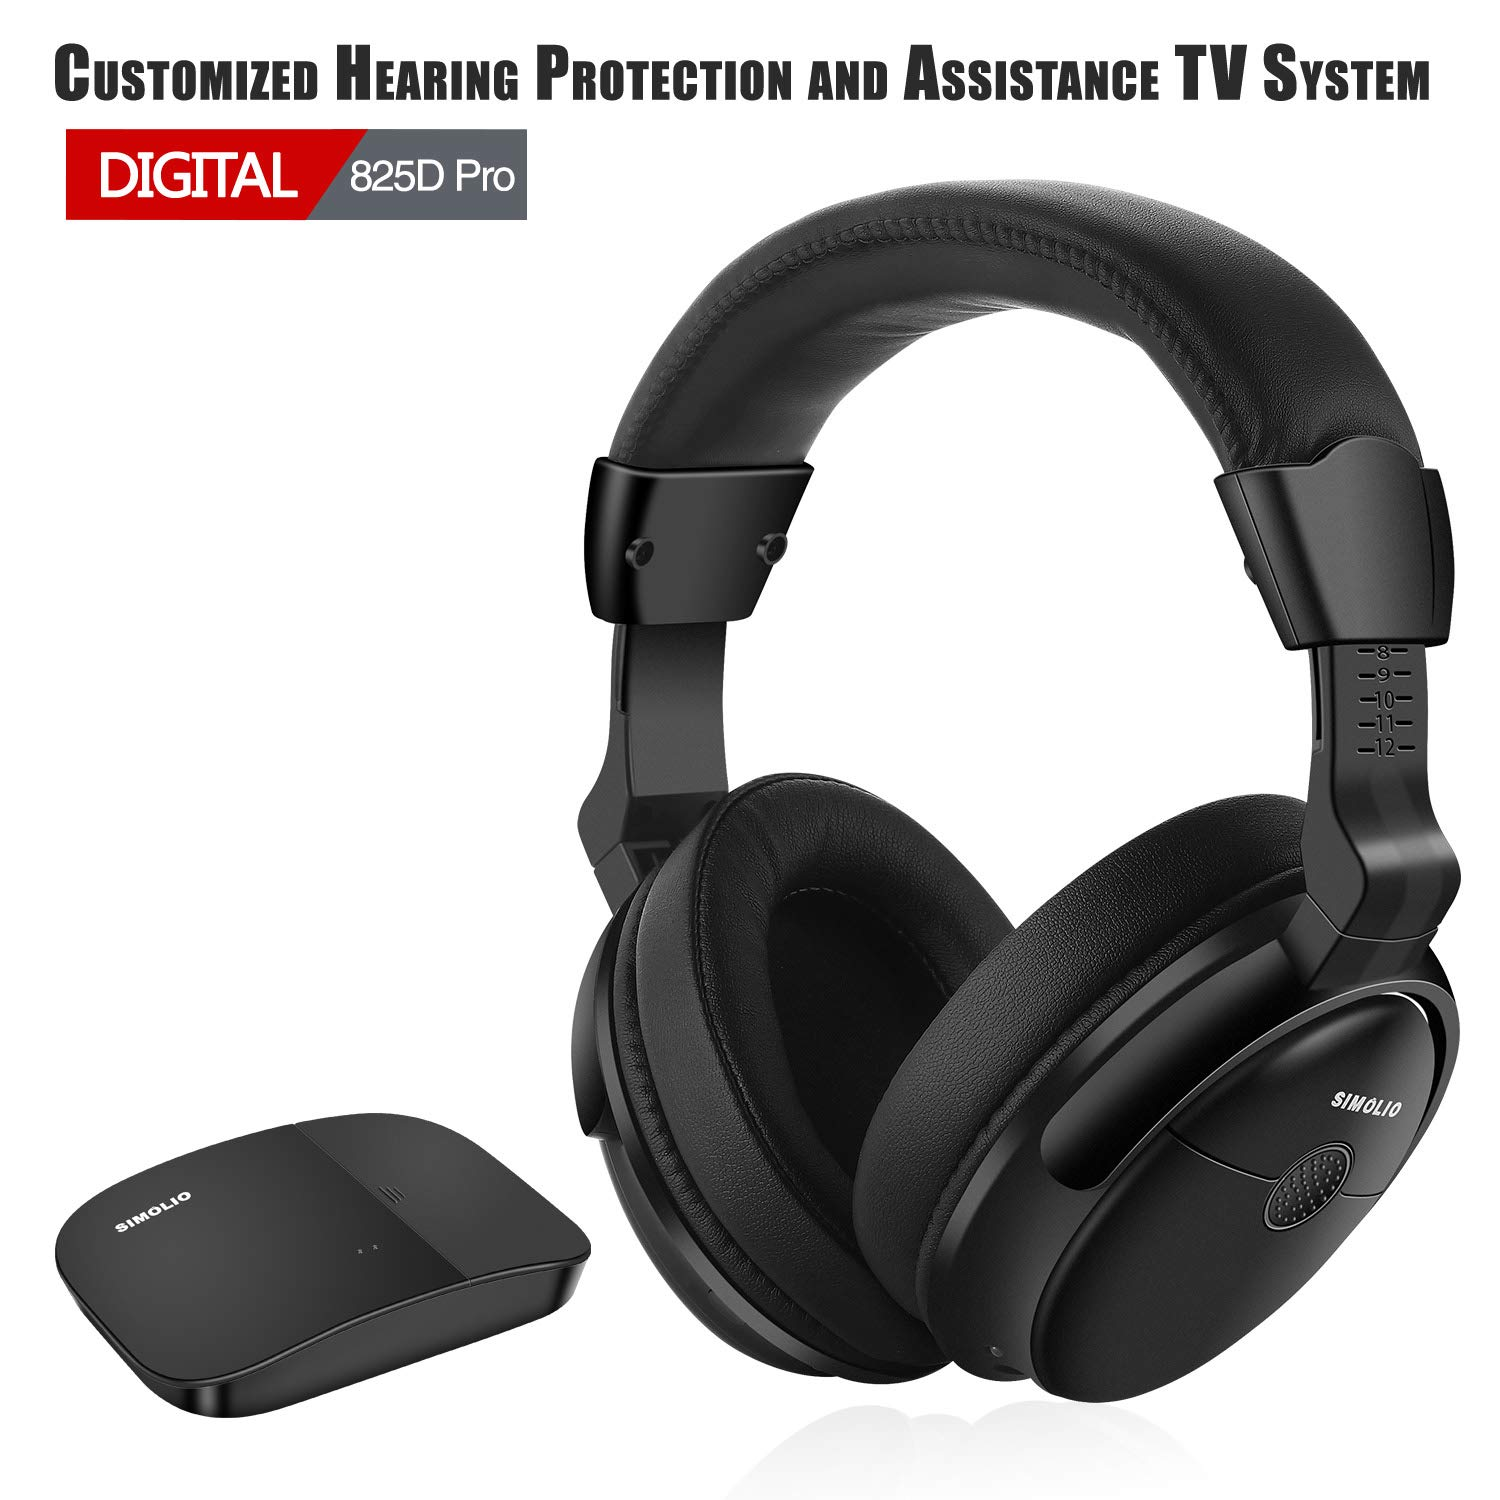 SIMOLIO SM 825D Pro Hearing Protection Wireless TV Headphones for Seniors and Hard of Hearing, Digital Wireless Headphones with Optical for TV, 2.4GHz